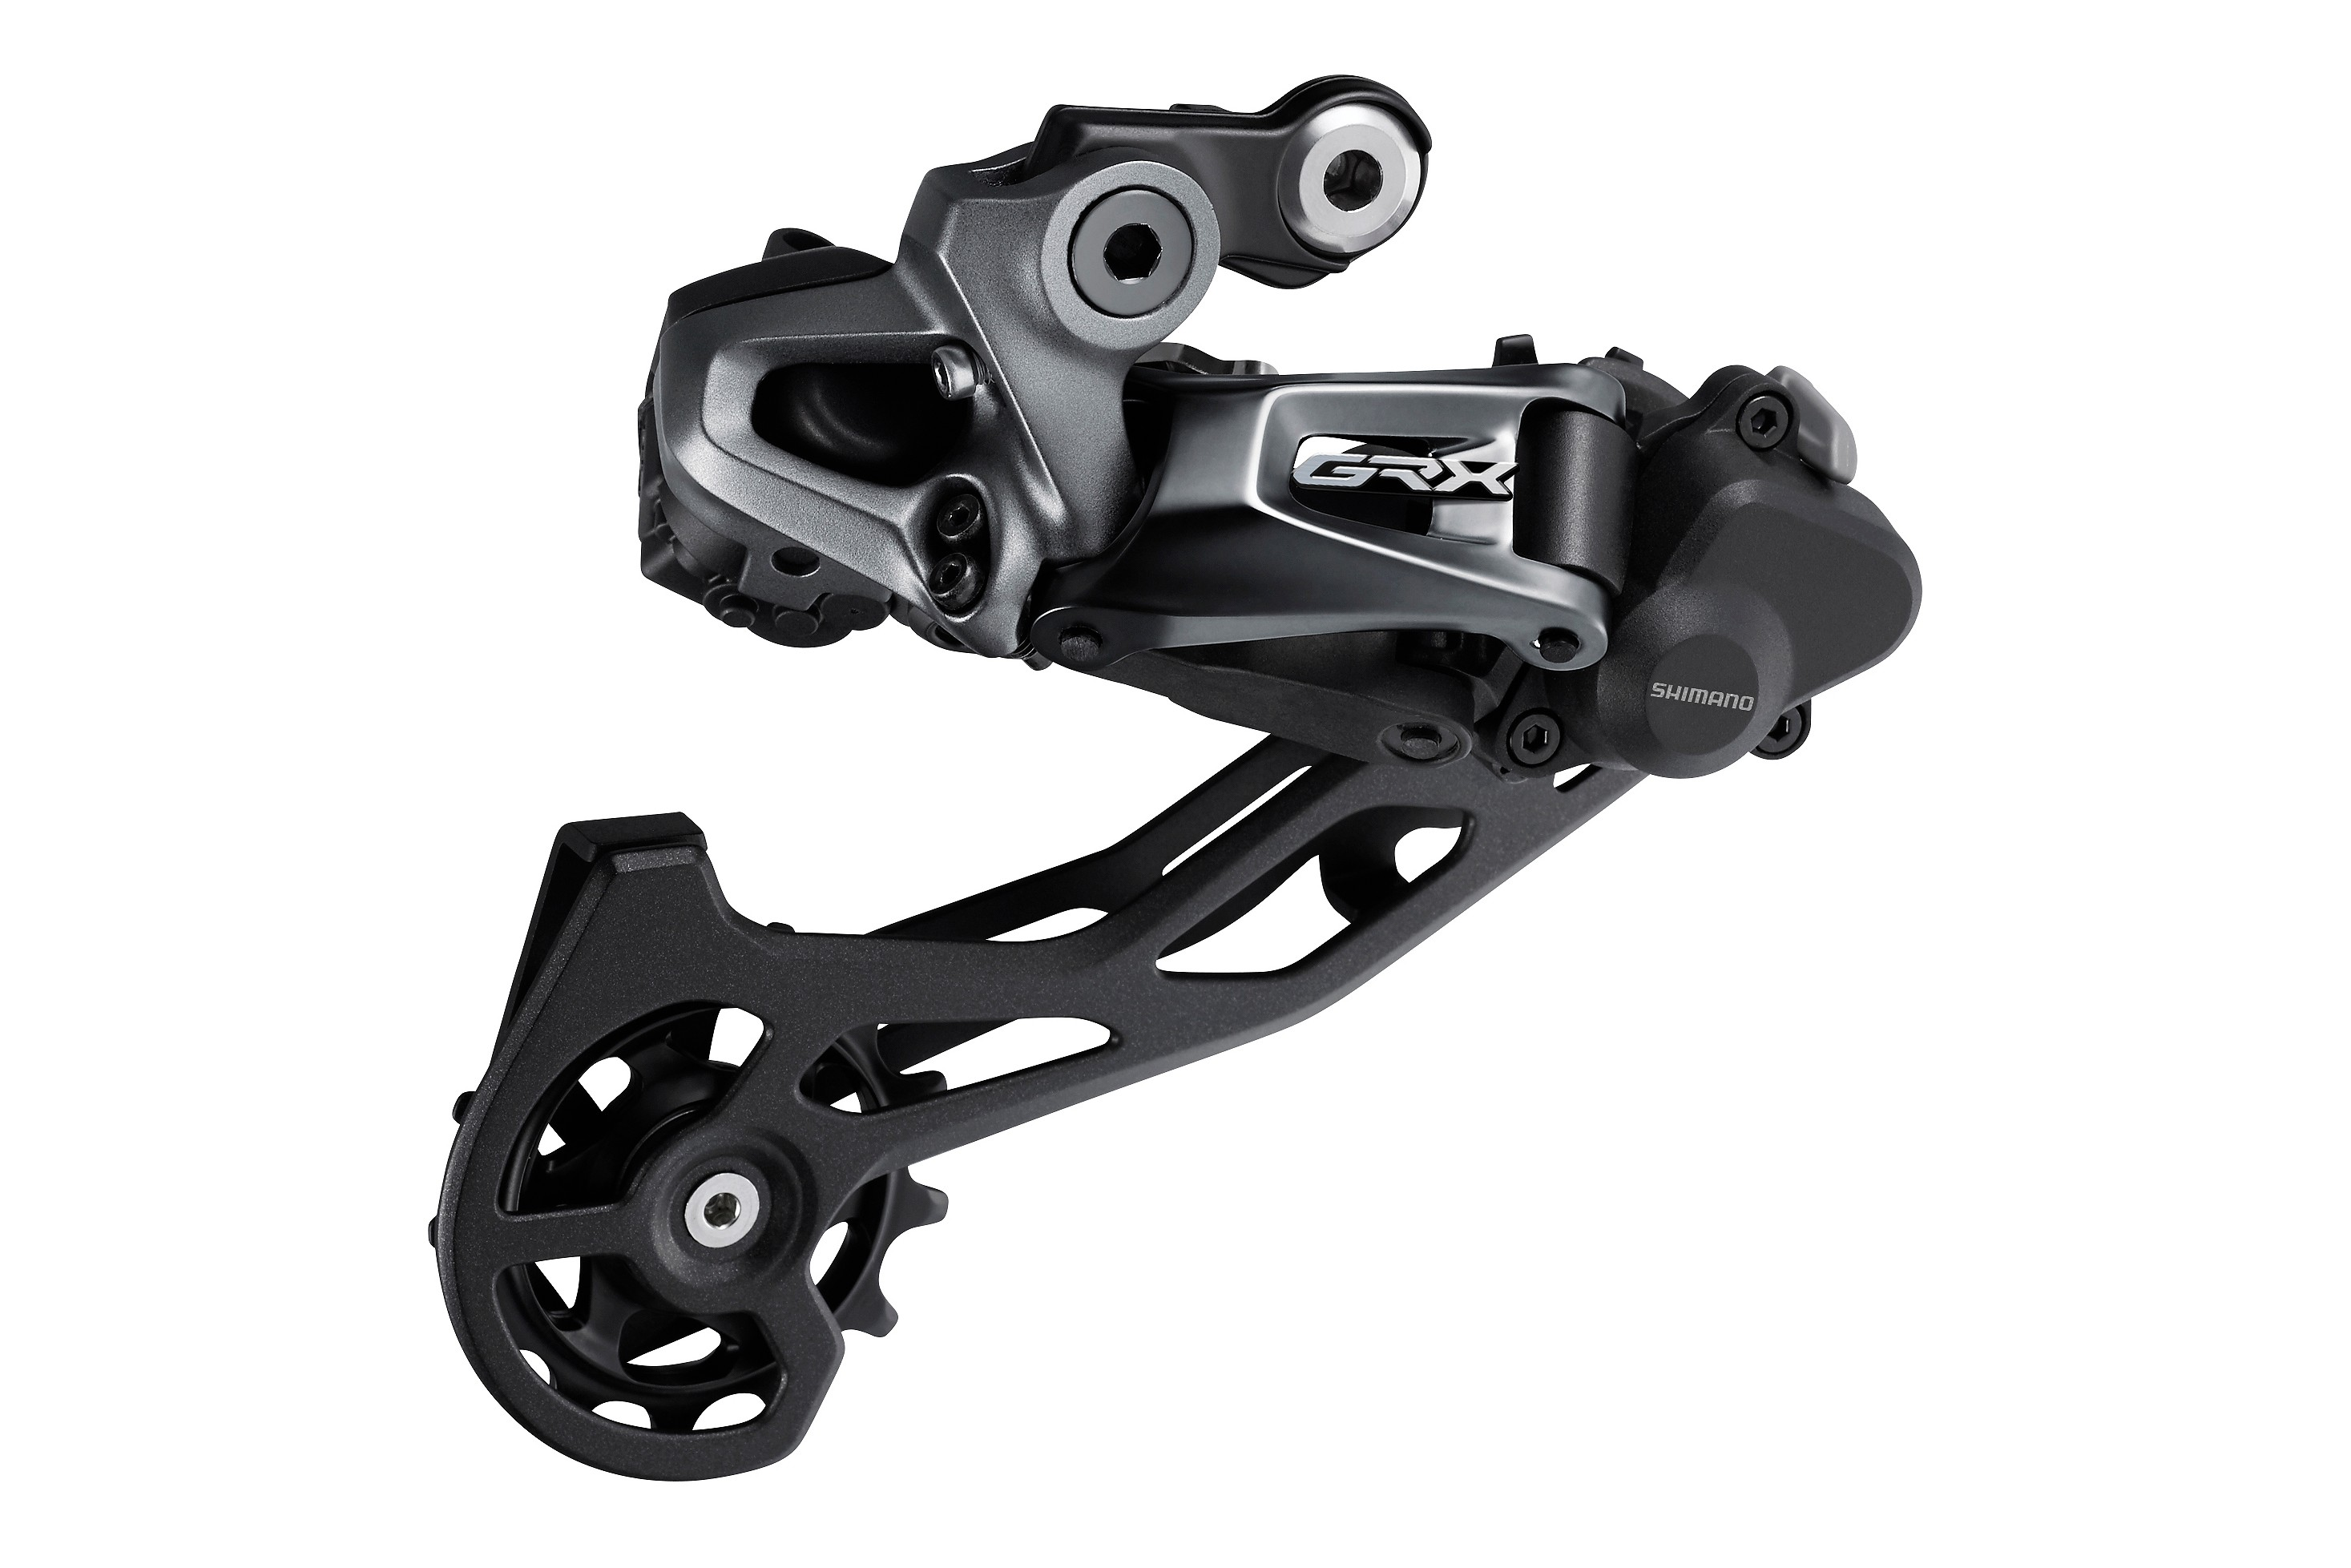 Shimano bicycle rear derailleur